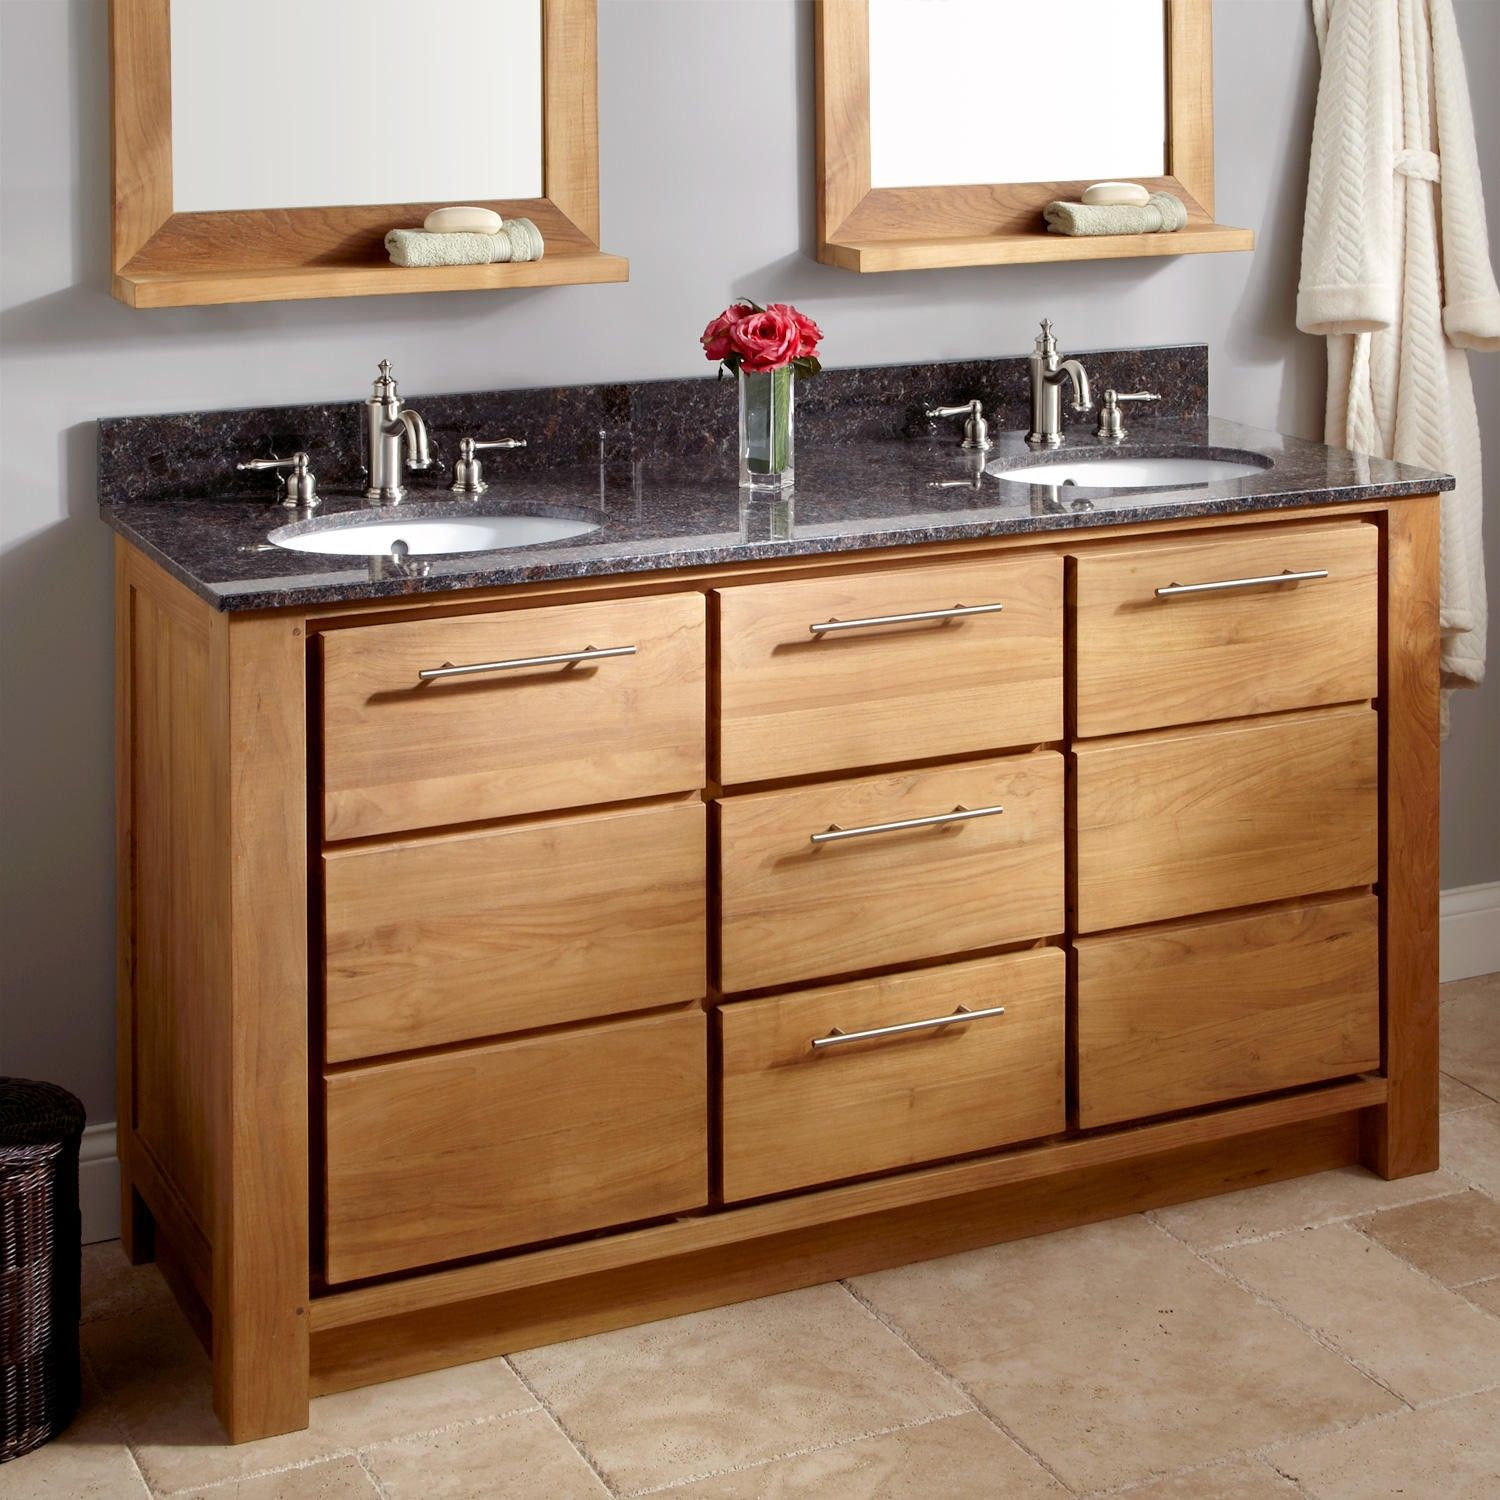 60 Venica Teak Double Vanity For Undermount Sinks Teak